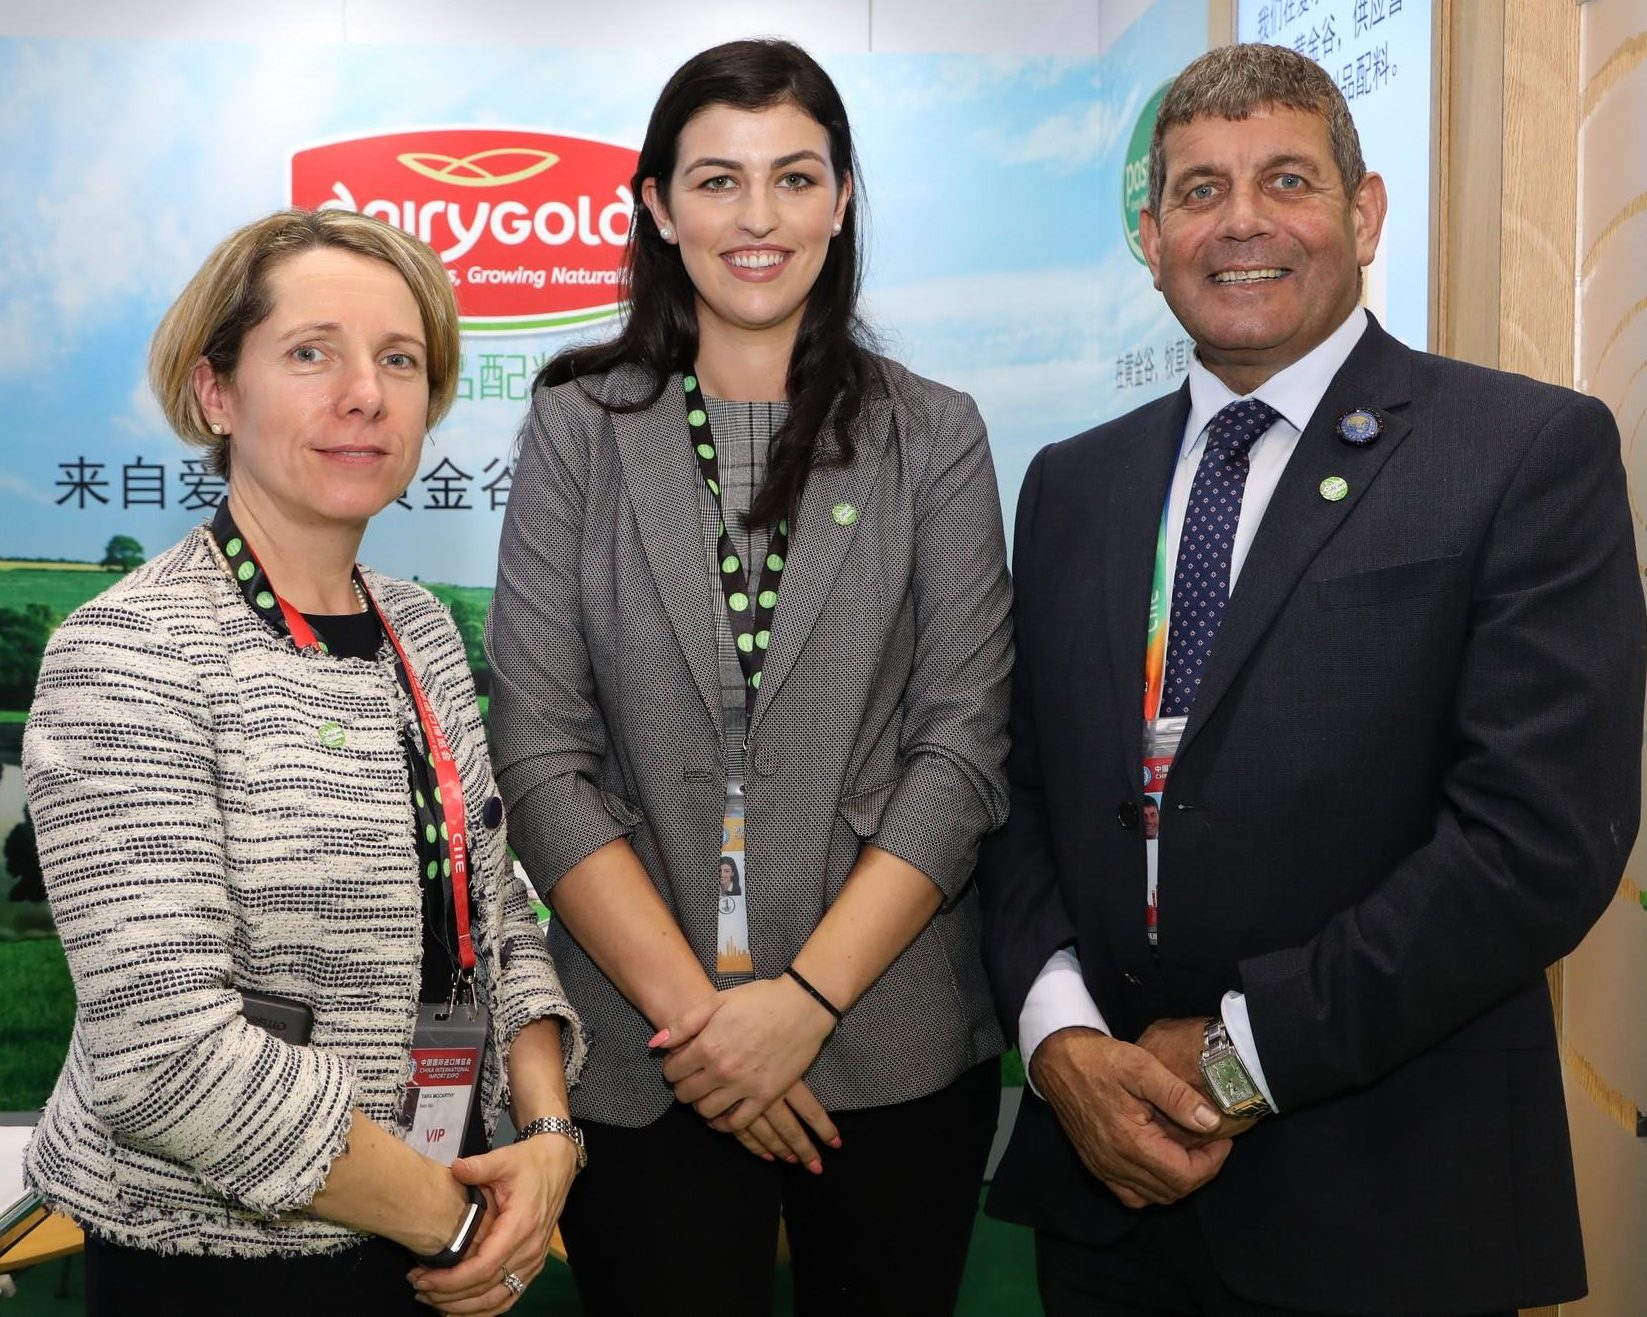 Dairygold attend China's first International Import Expo